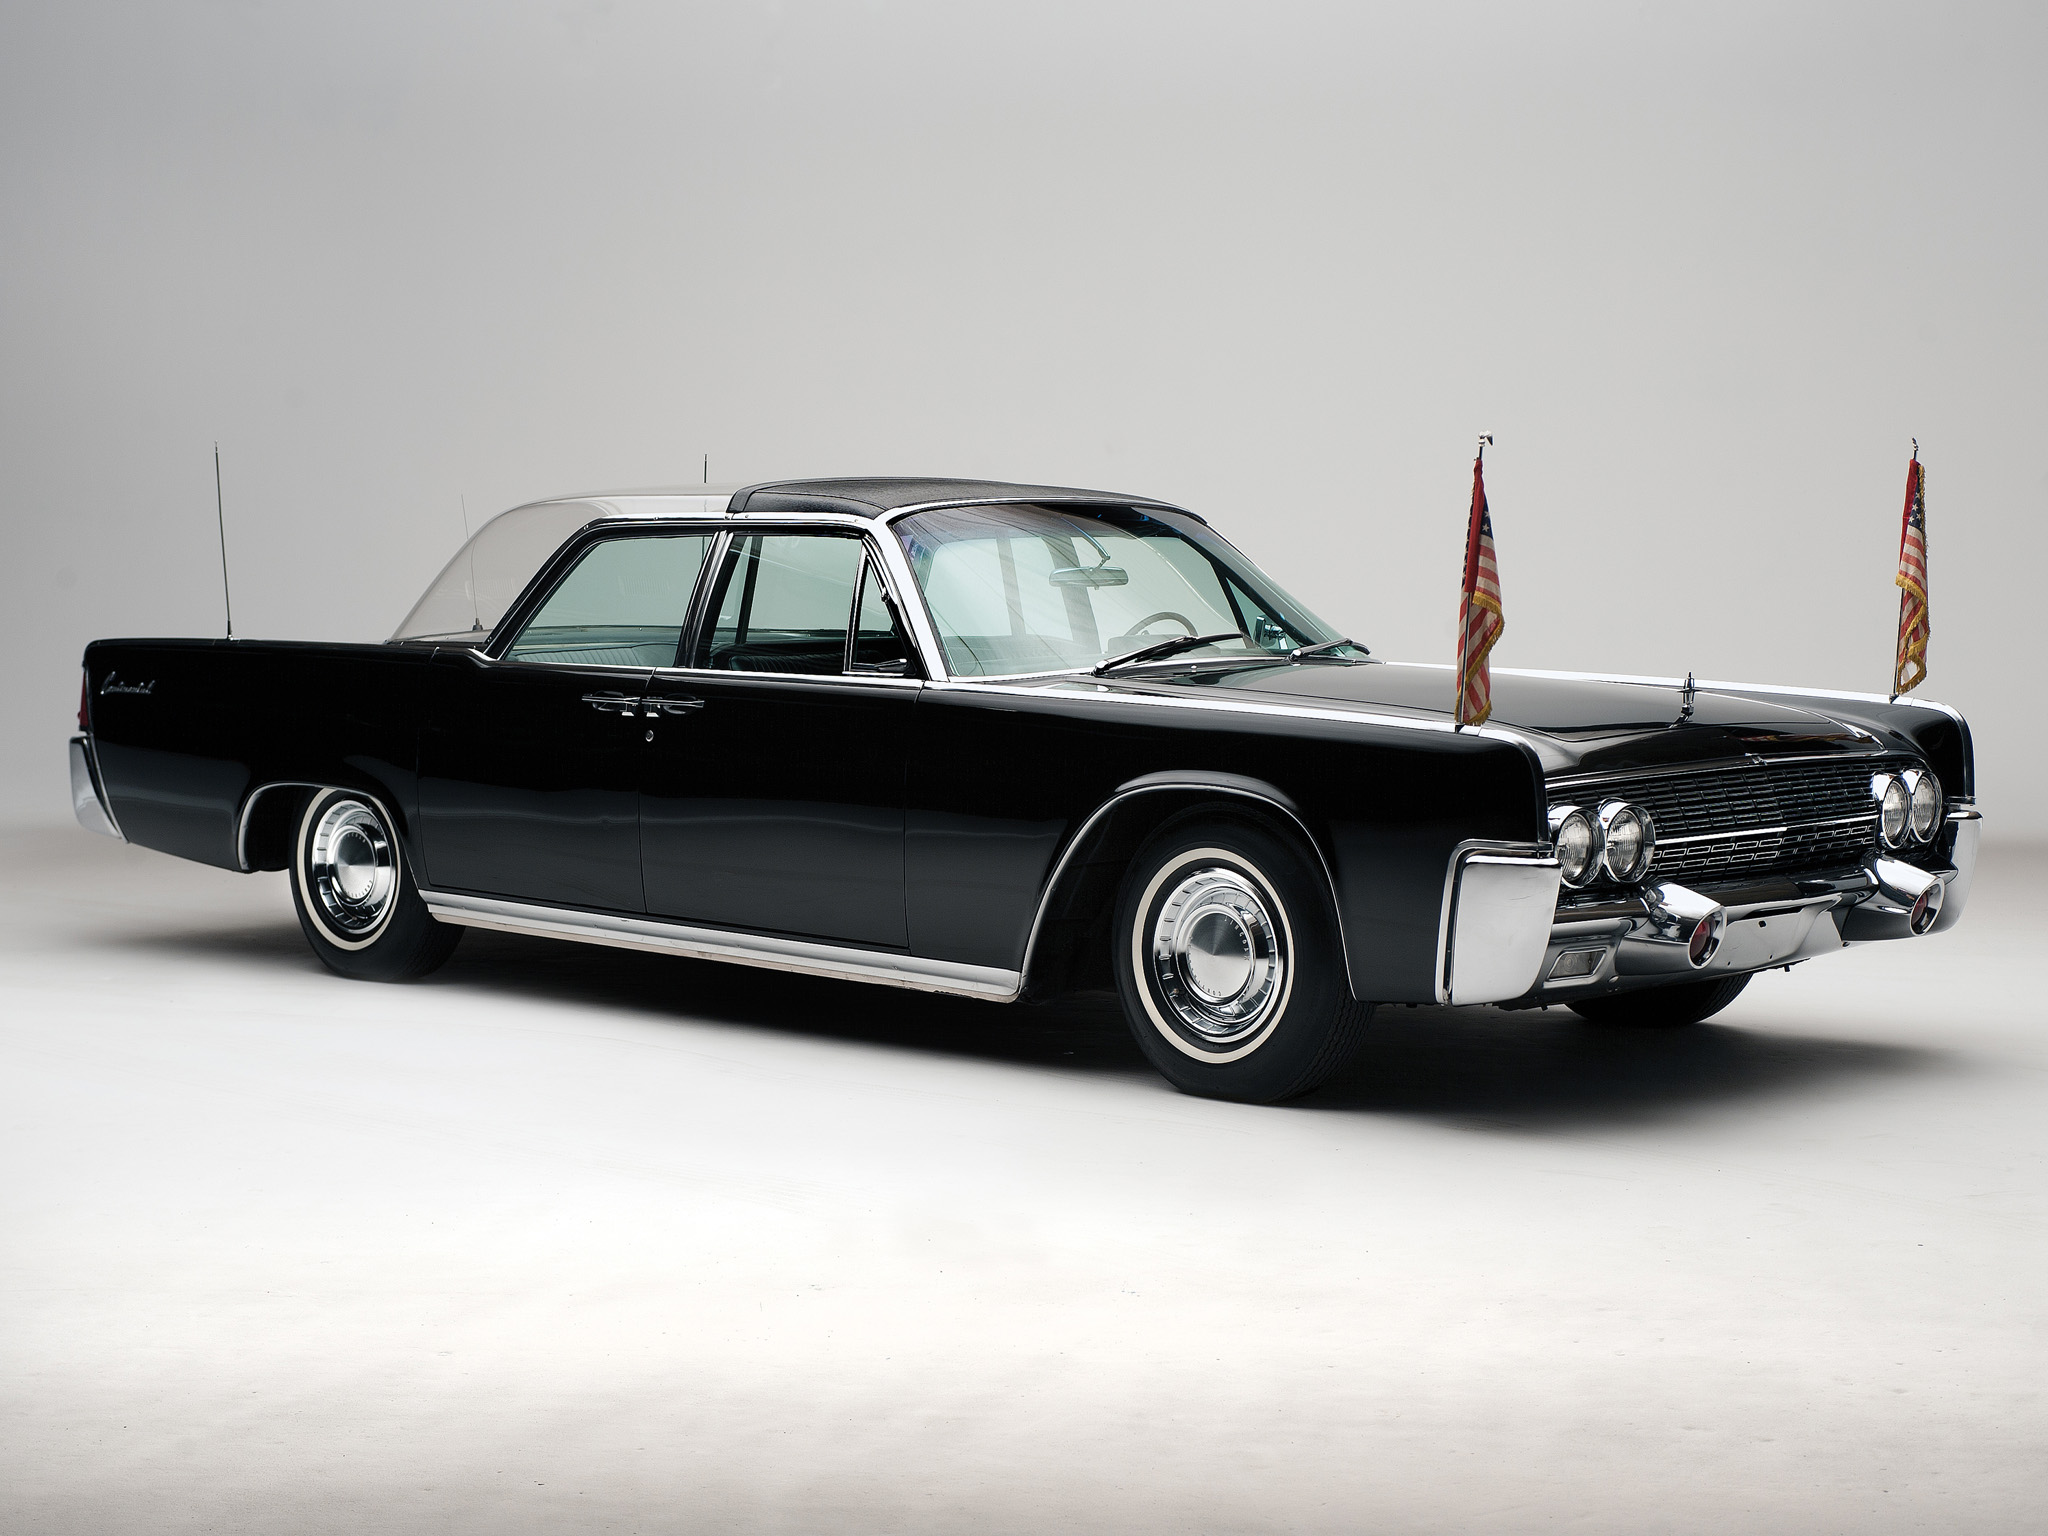 1962 lincoln continental bubbletop kennedy limousine classic luxury fs wallpaper 2048x1536. Black Bedroom Furniture Sets. Home Design Ideas